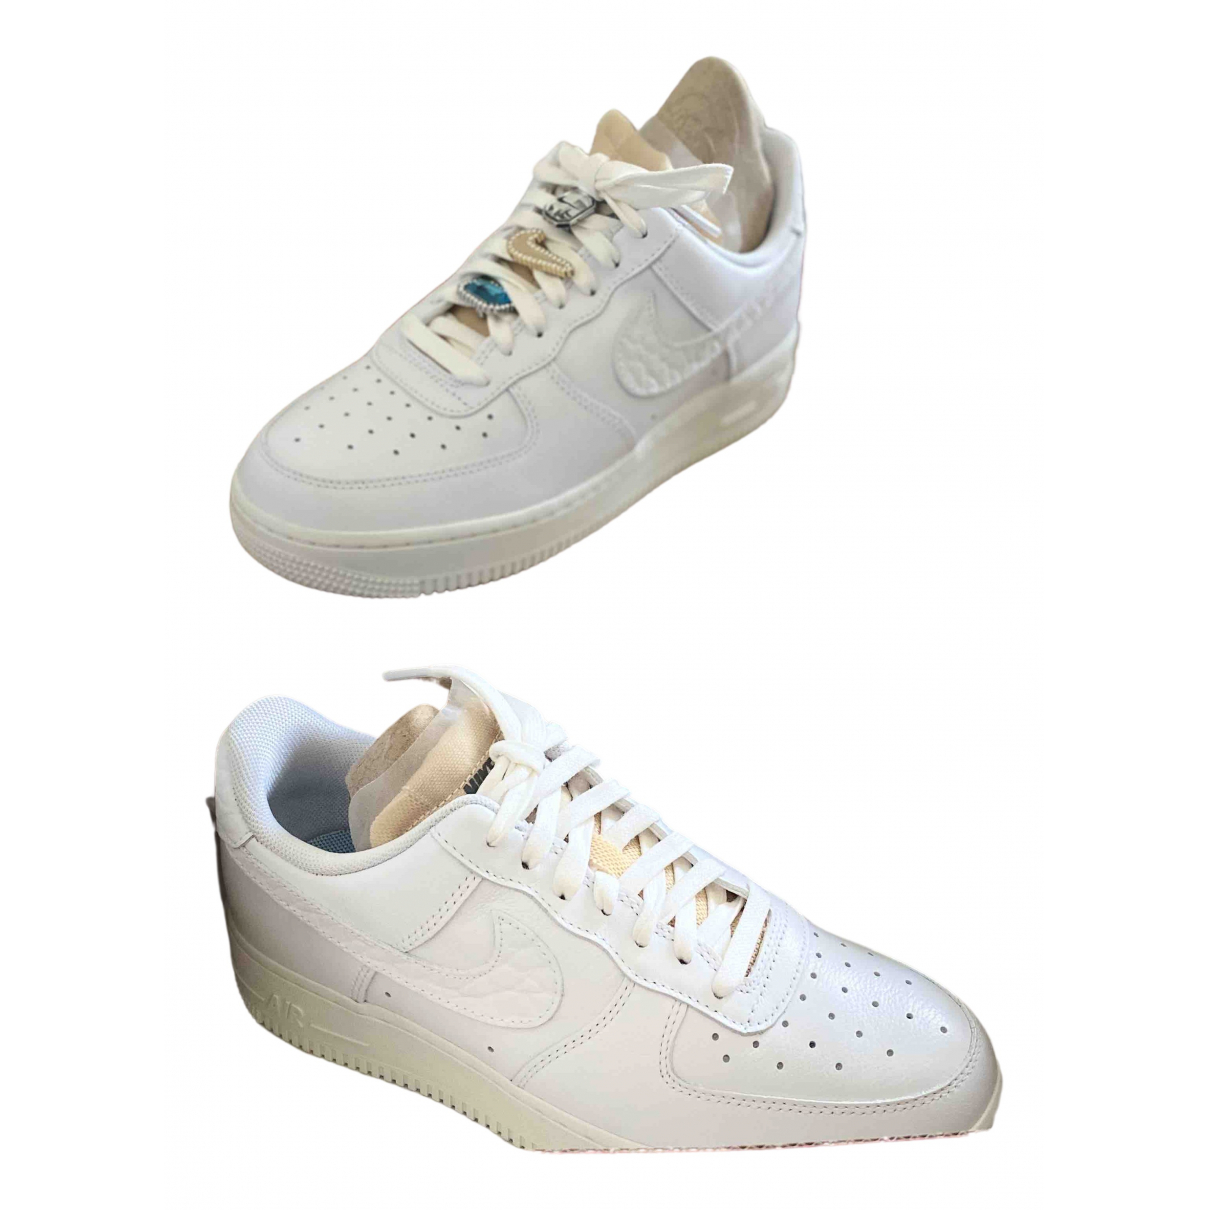 Nike Air Force 1 White Leather Trainers for Women 39 EU